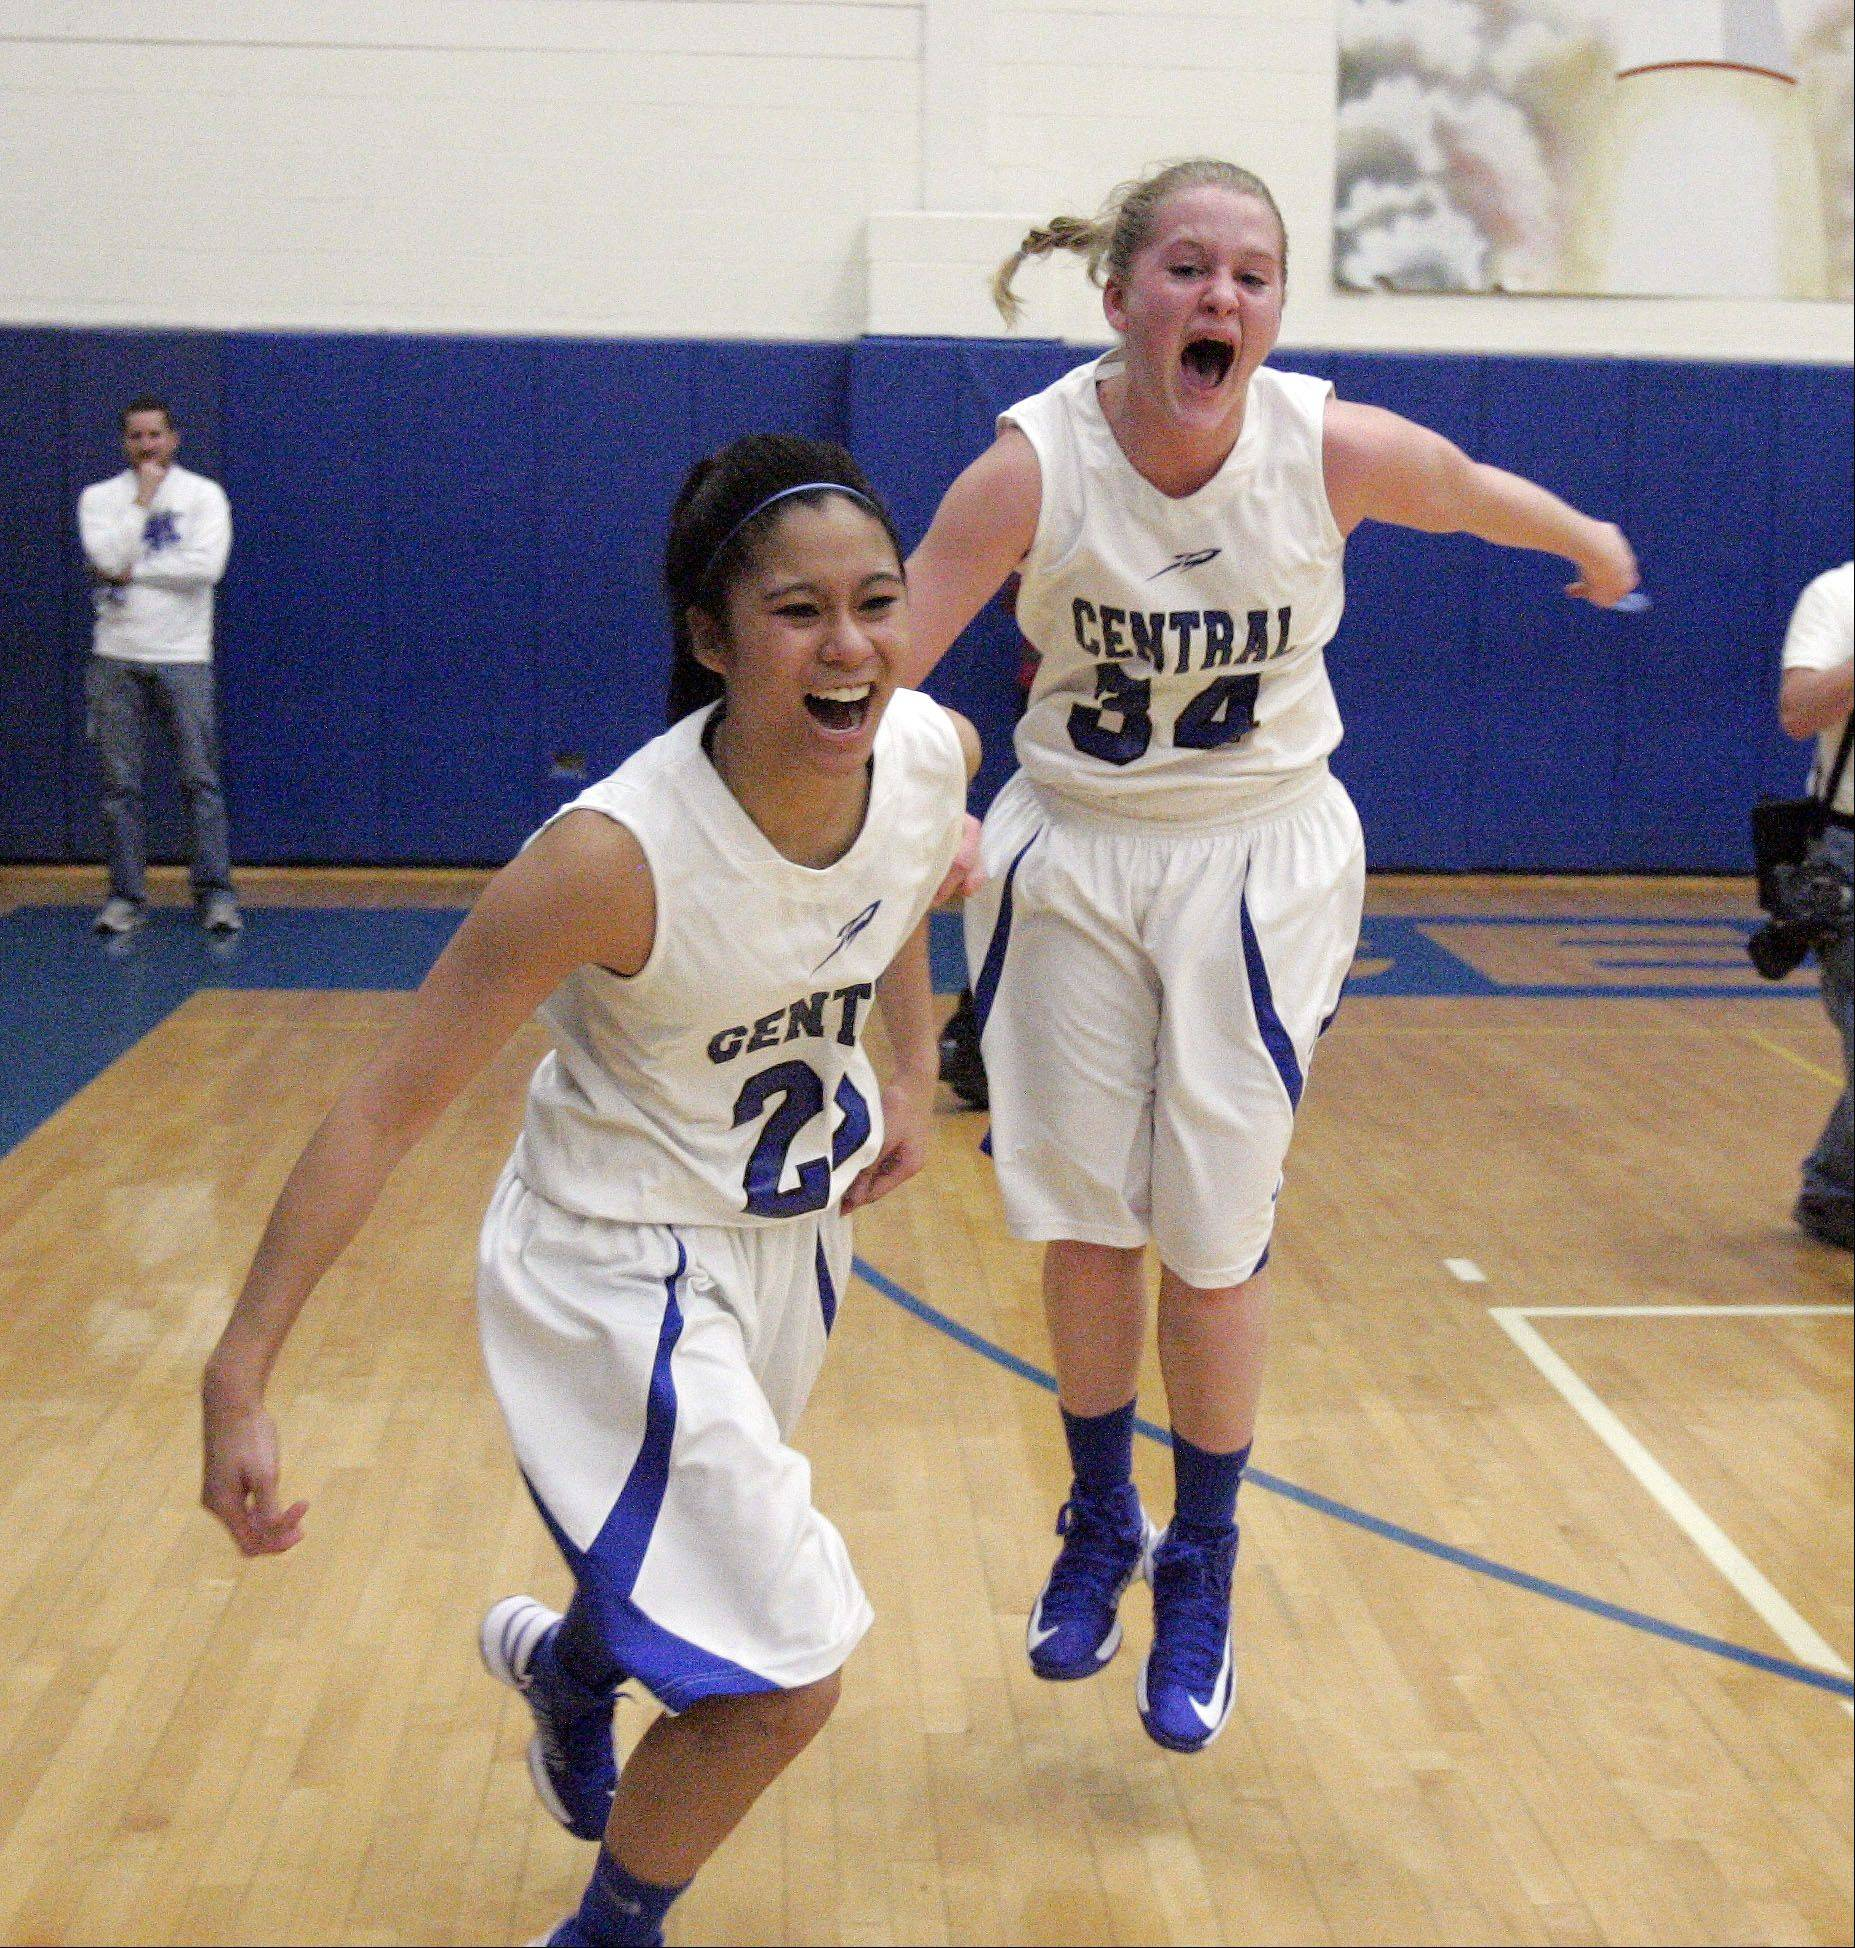 Burlington Central�s Camille Delacruz (23) and Samantha Pryor (34) Celebrate after Burlington Central beat Plano 38-34 for the IHSA Class 3A regional girls basketball championship Friday February 15, 2013 at Burlington.